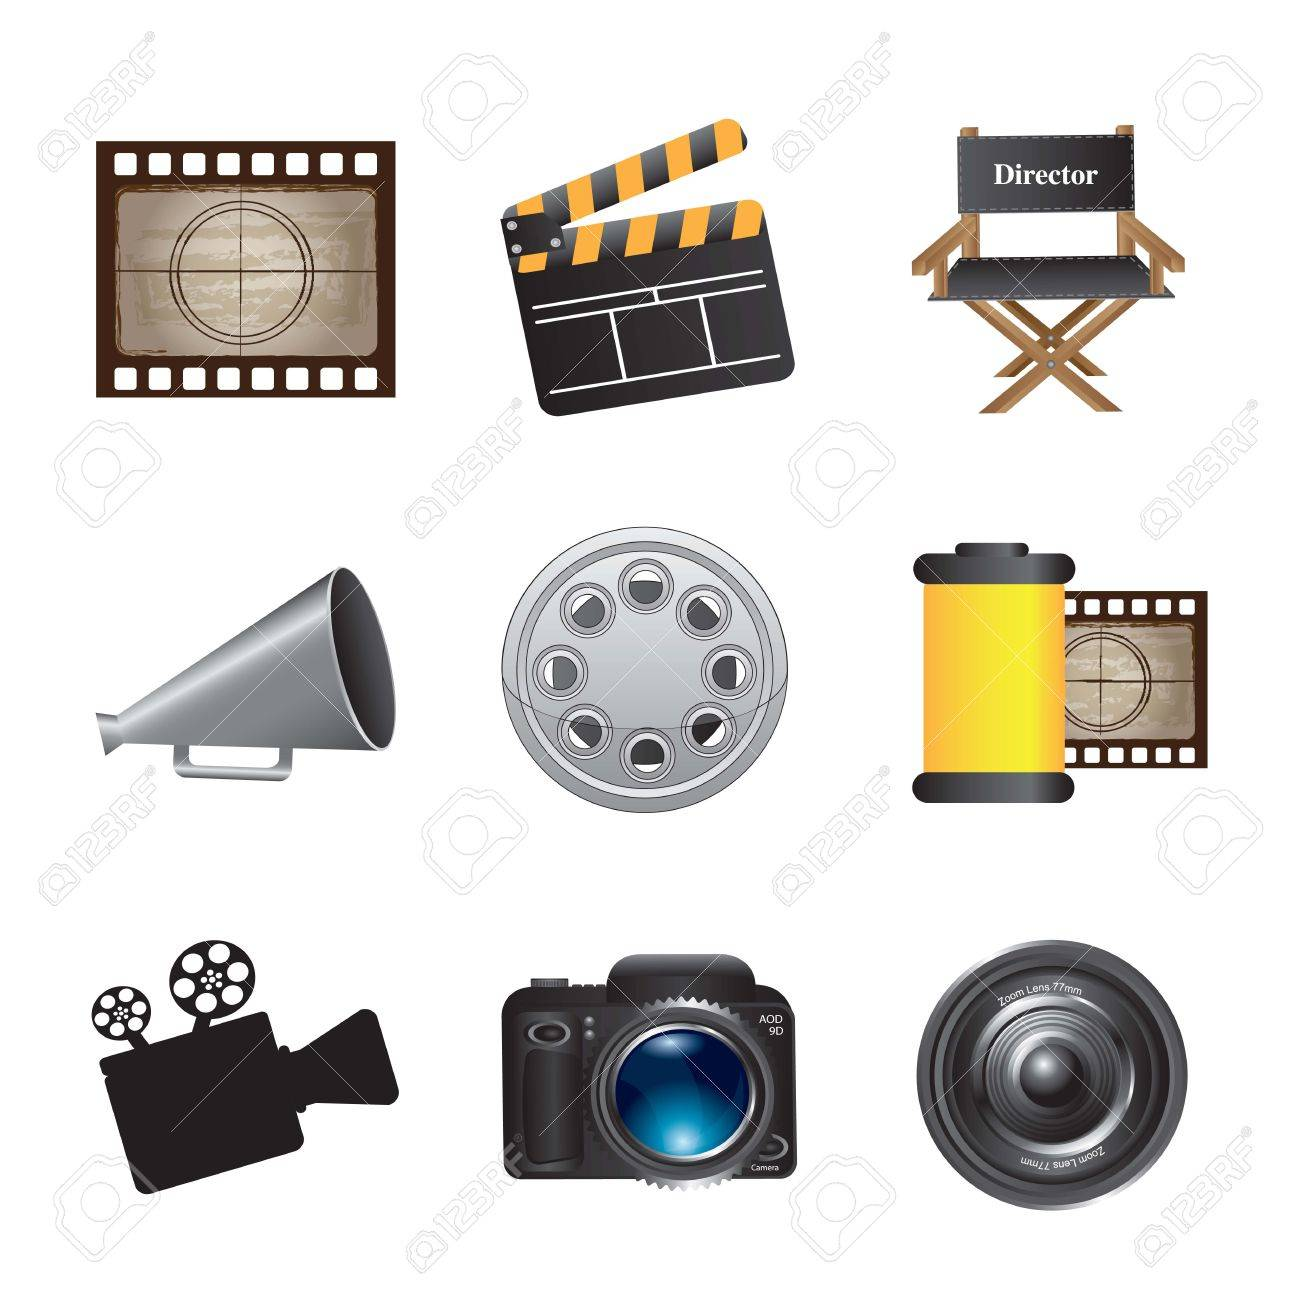 icons movie over white background - 14792941